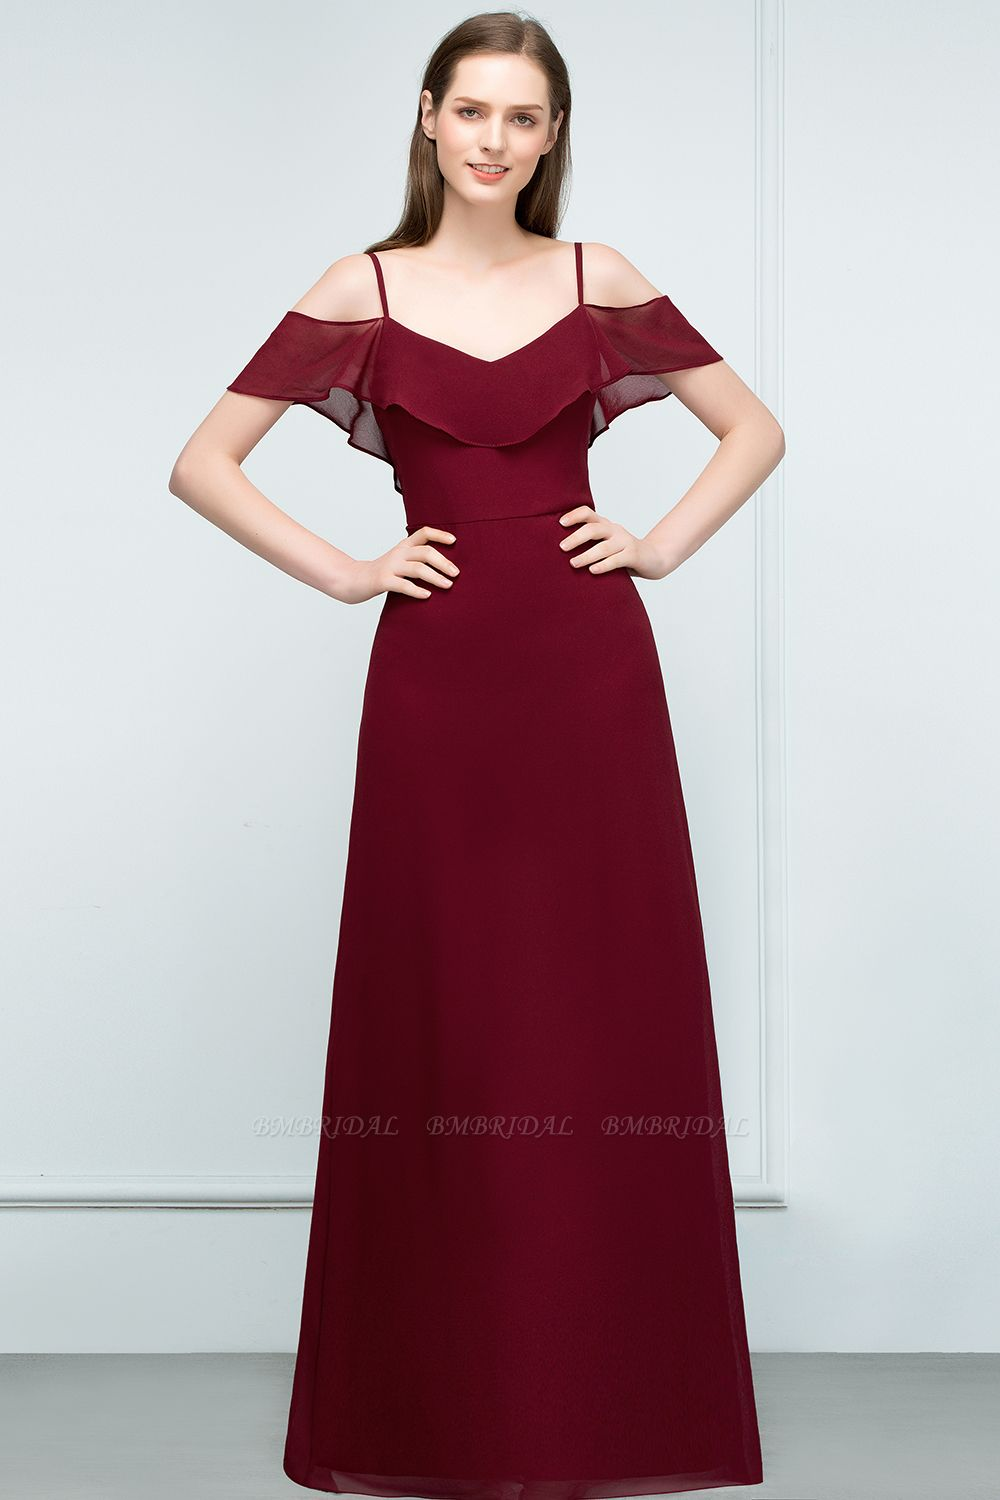 BMbridal Affordable Off-the-shoulder Burgundy Chiffon Bridesmaid Dress With Spaghetti Straps